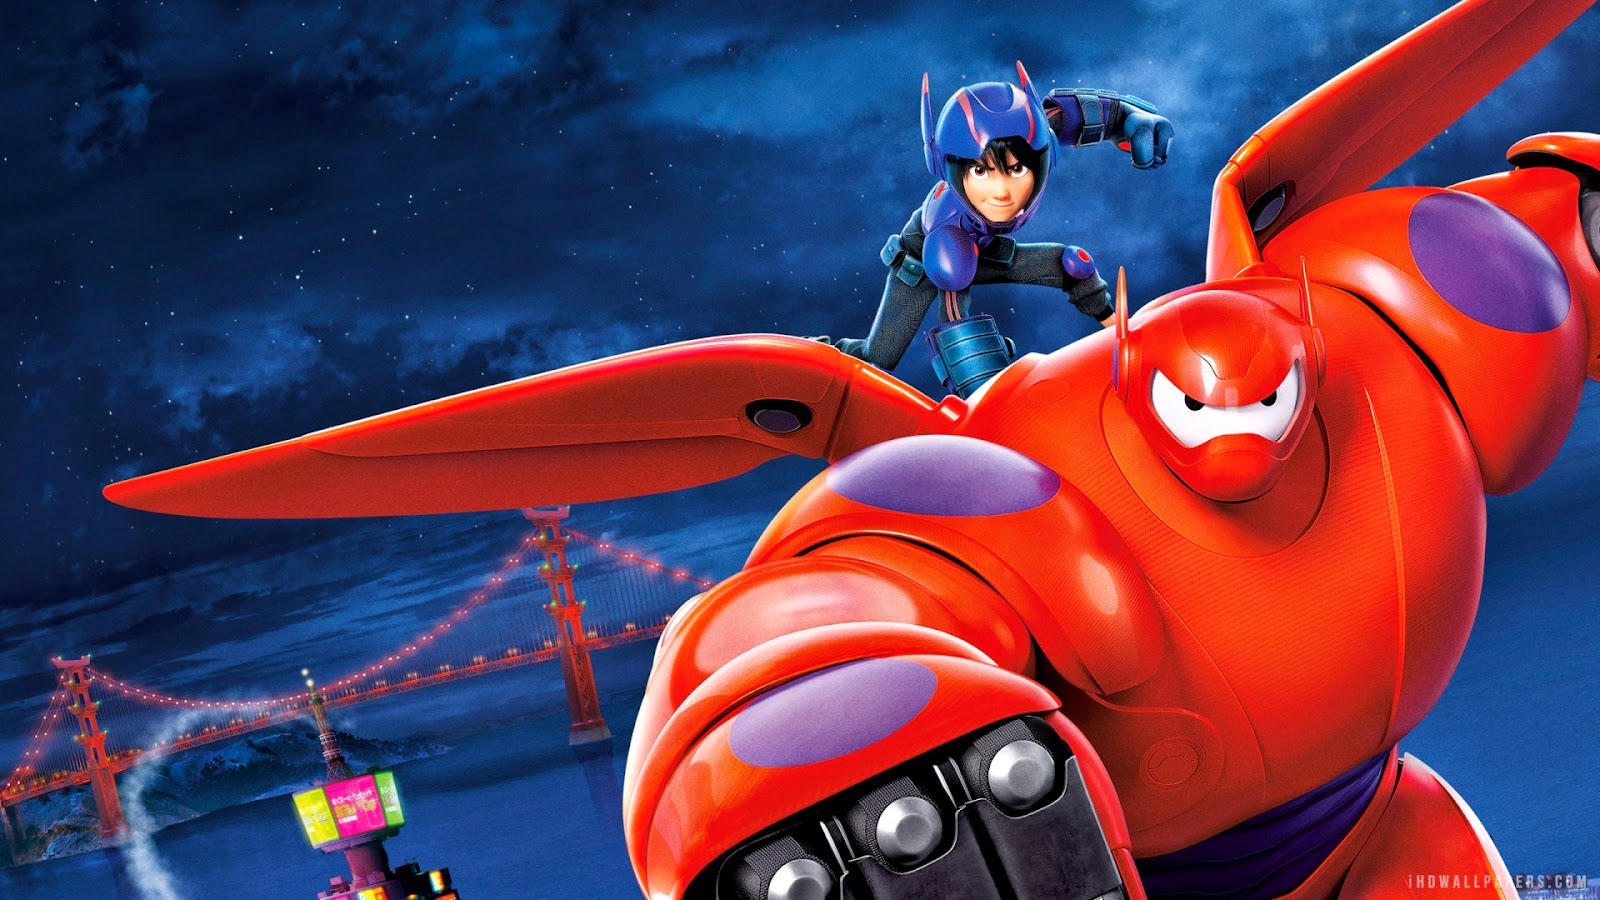 Big Hero 6 Images Icons Wallpapers and Photos on Fanpop - big hero 6 hiro baymax wallpapers